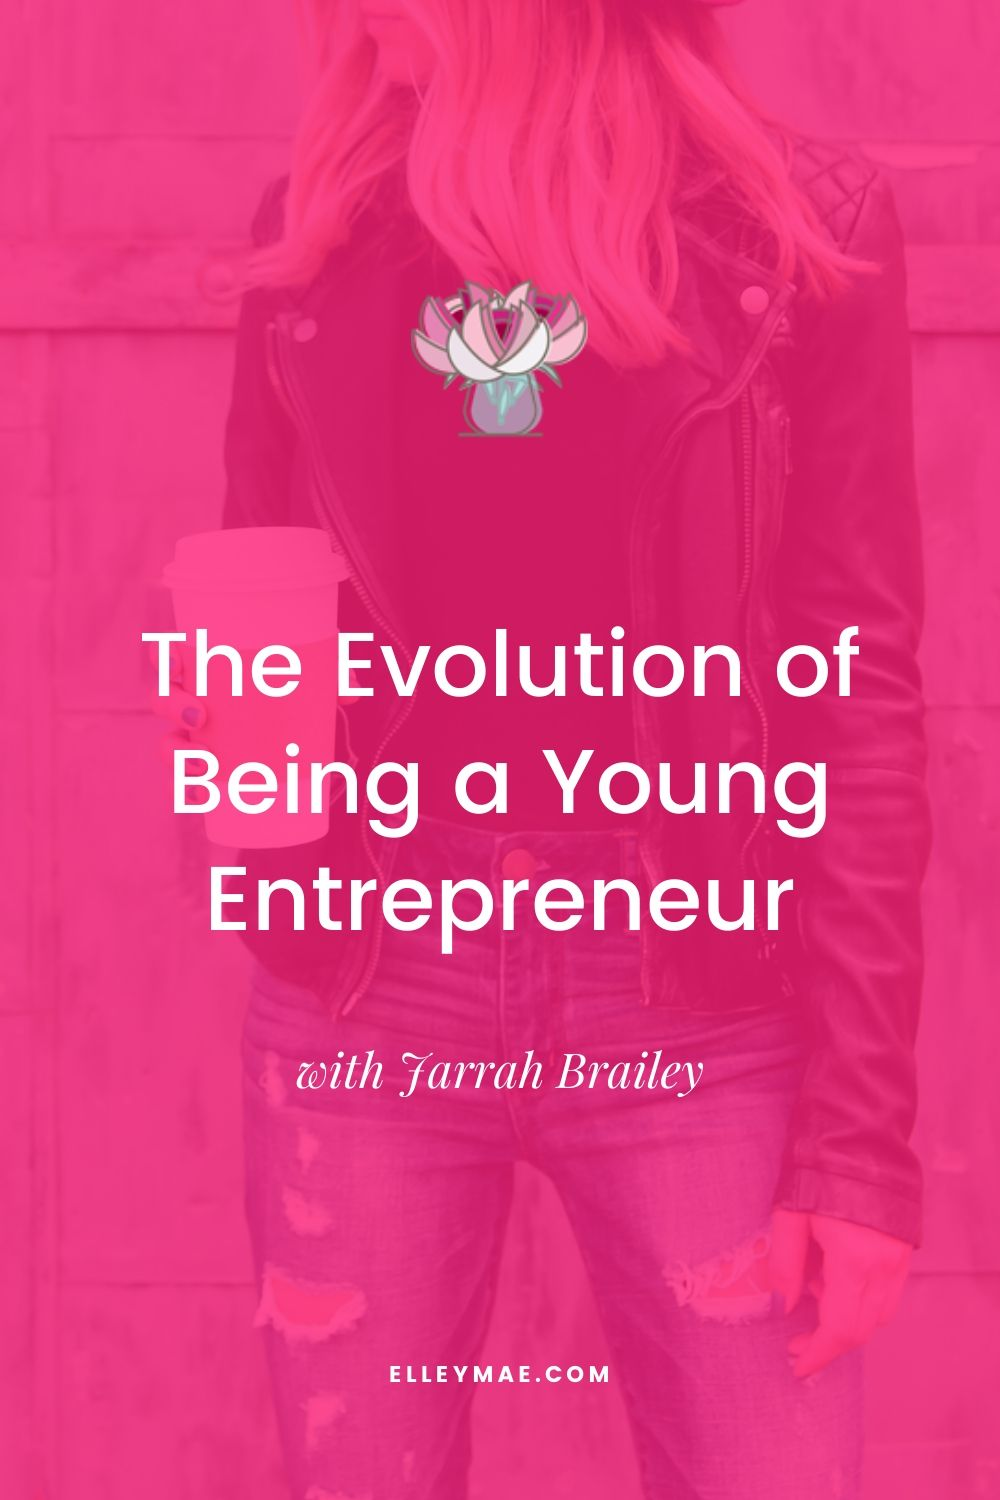 The Evolution of Being a Young Entrepreneur with Jarrah Brailey - 1